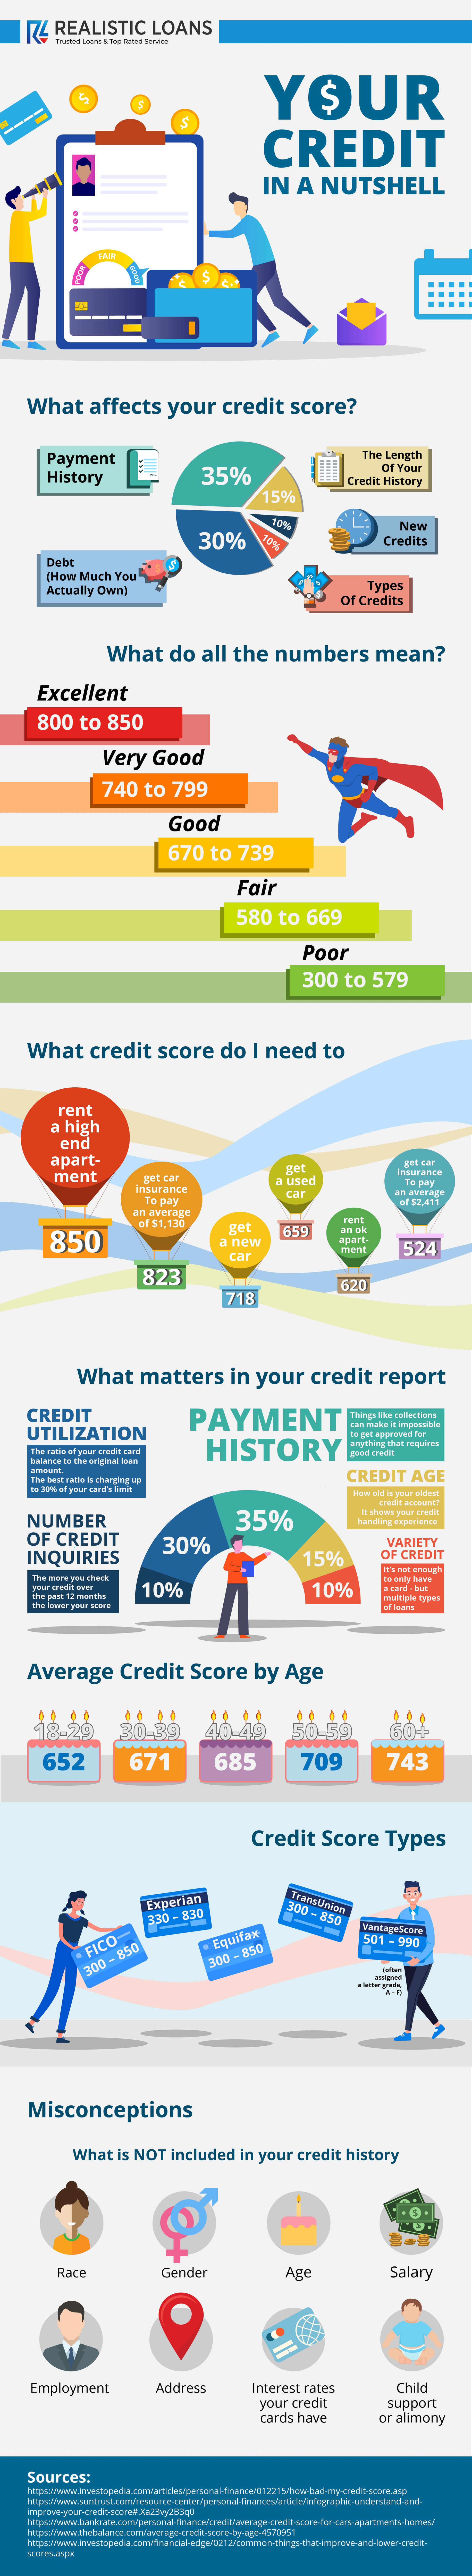 What Kind Of Credit Score To Buy A Car >> Is Your Credit Score Good Enough To Buy A Car